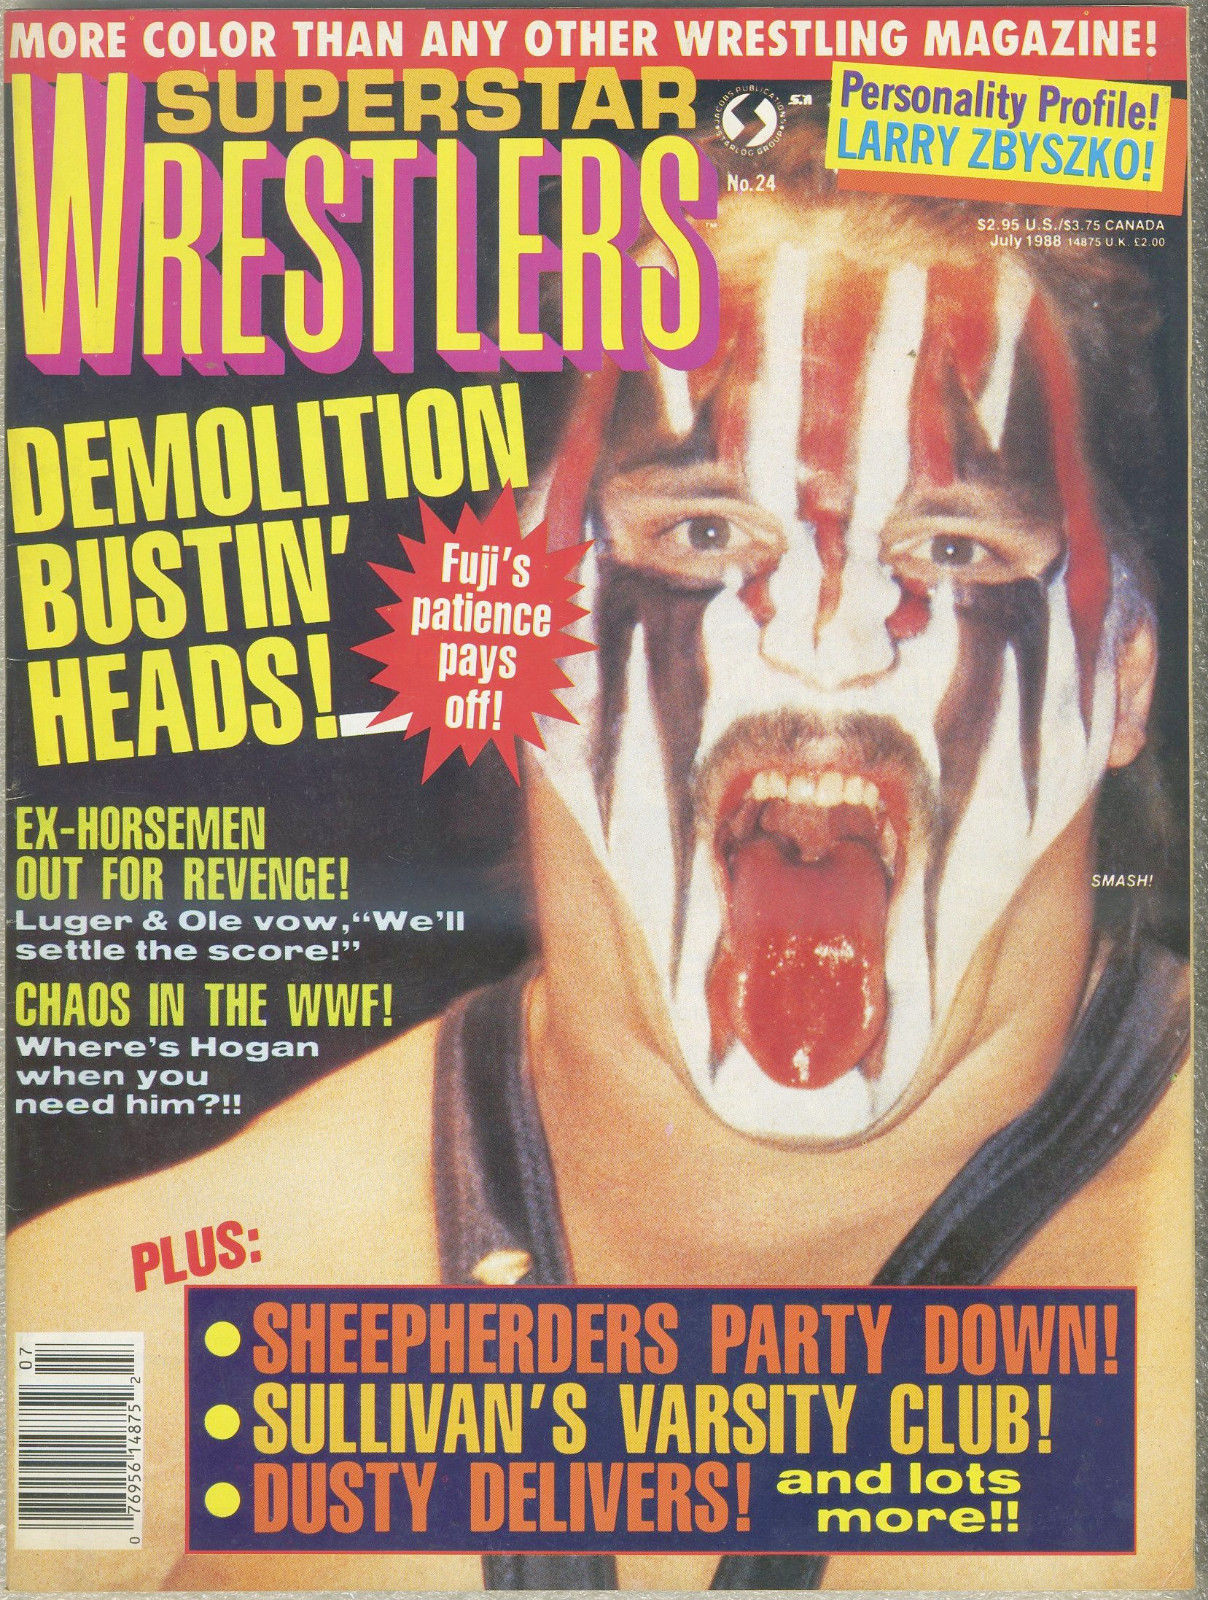 OSW Review | Superstar Wrestlers Magazine Covers 1988